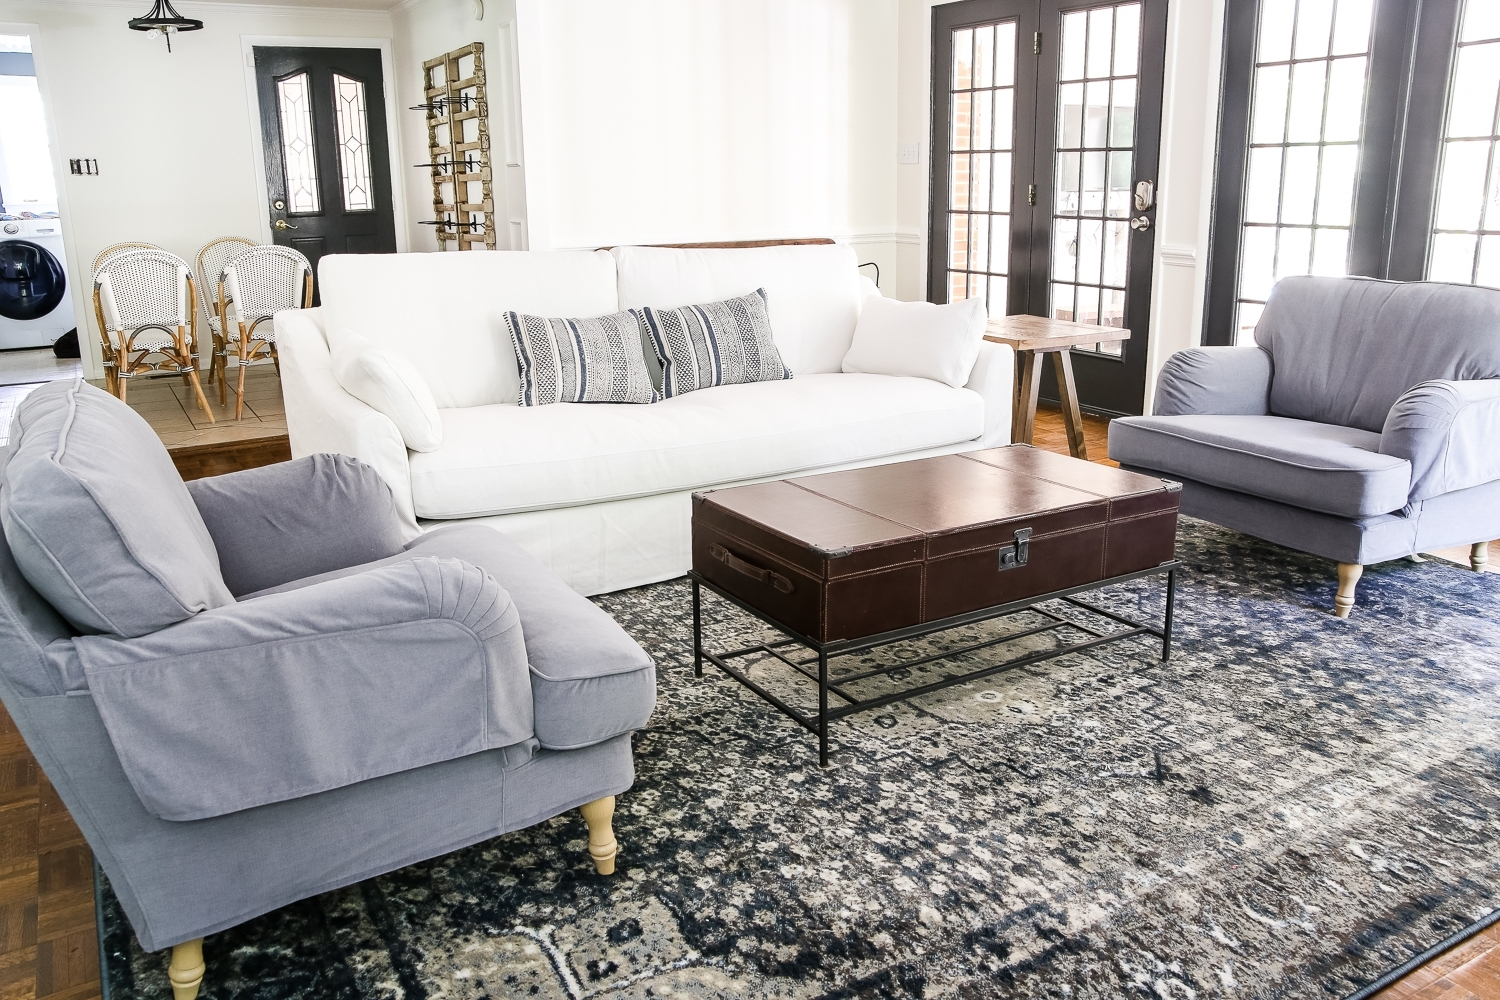 Ikea's New Sofa And Chairs And How To Keep Them Clean – Bless'er House In Widely Used Sofa With Chairs (View 7 of 20)